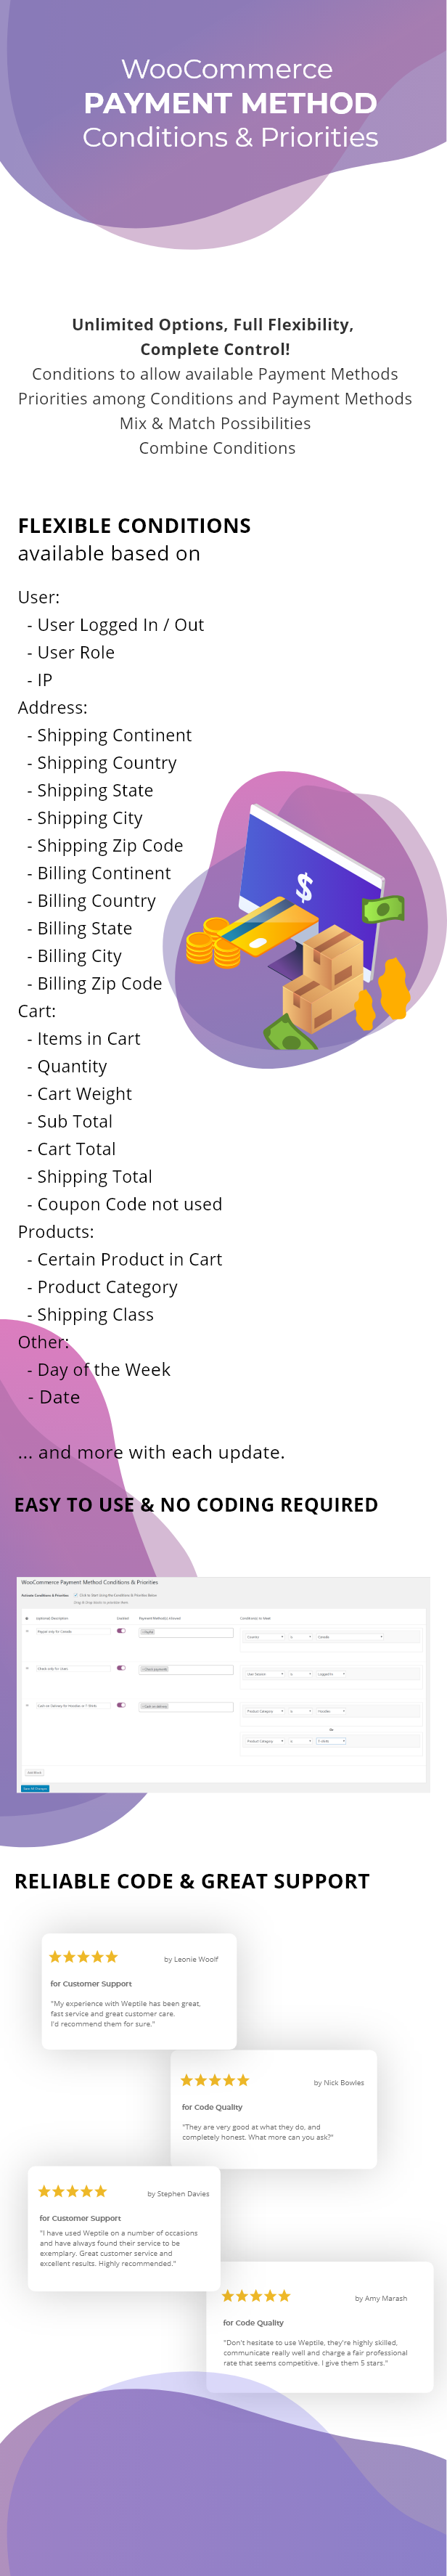 WooCommerce Payment Method Conditions & Priorities - 1